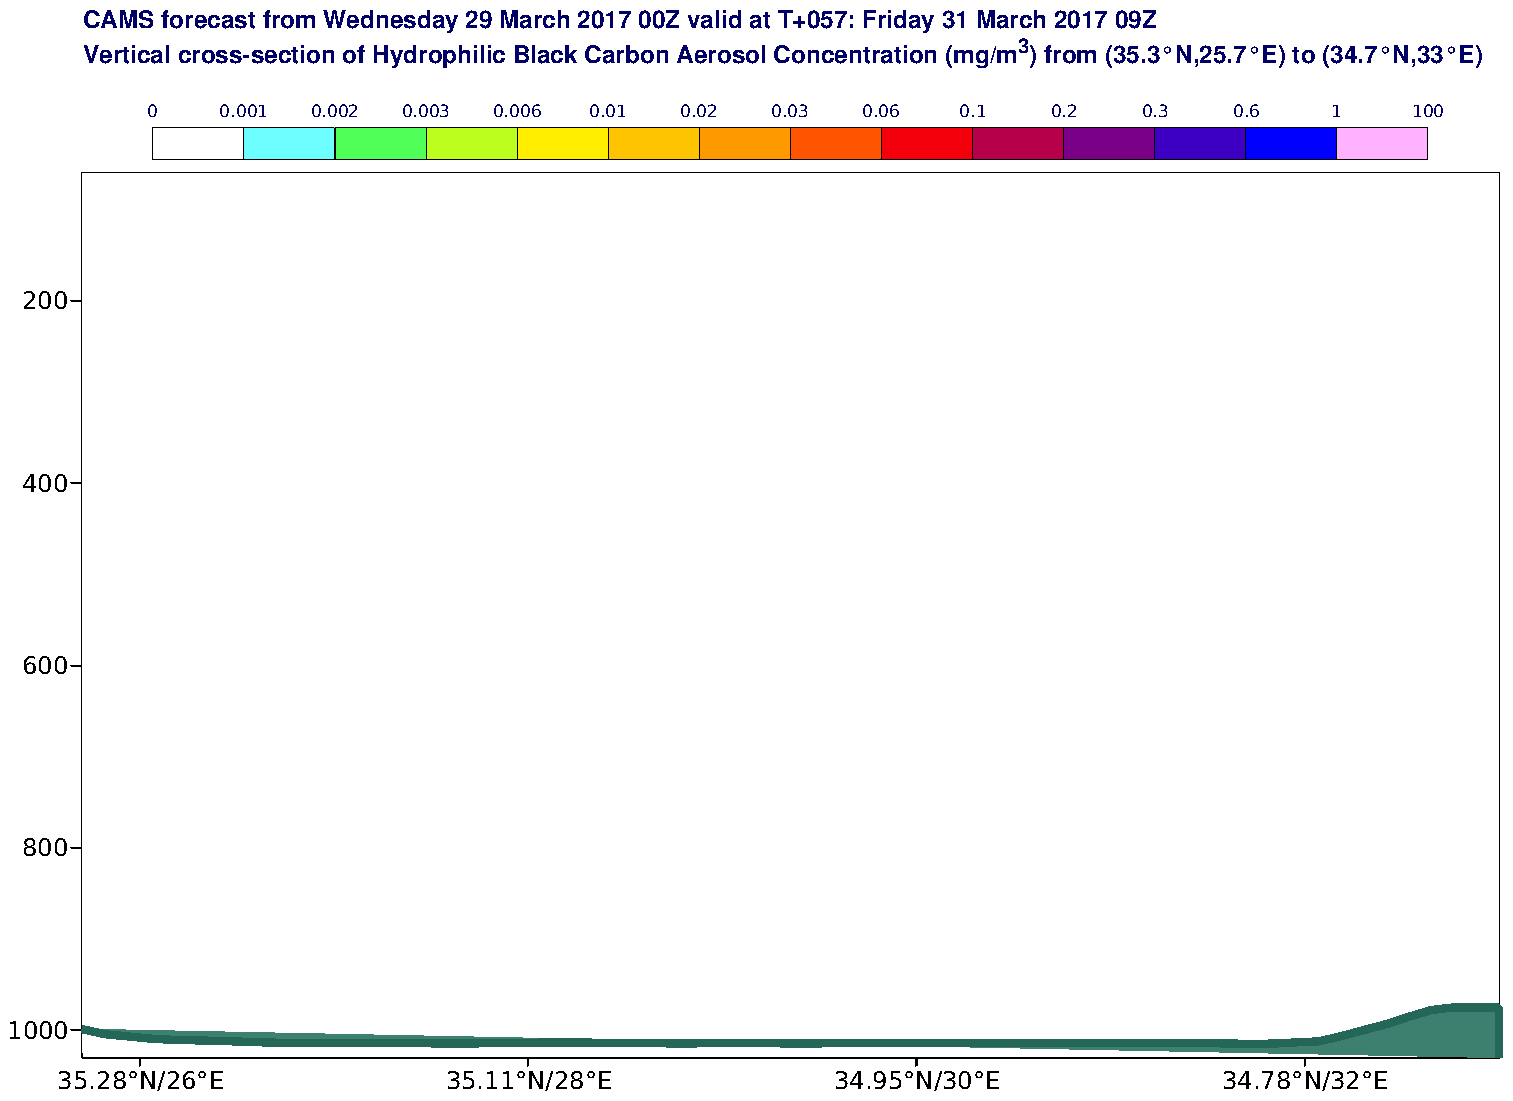 Vertical cross-section of Hydrophilic Black Carbon Aerosol Concentration (mg/m3) valid at T57 - 2017-03-31 09:00